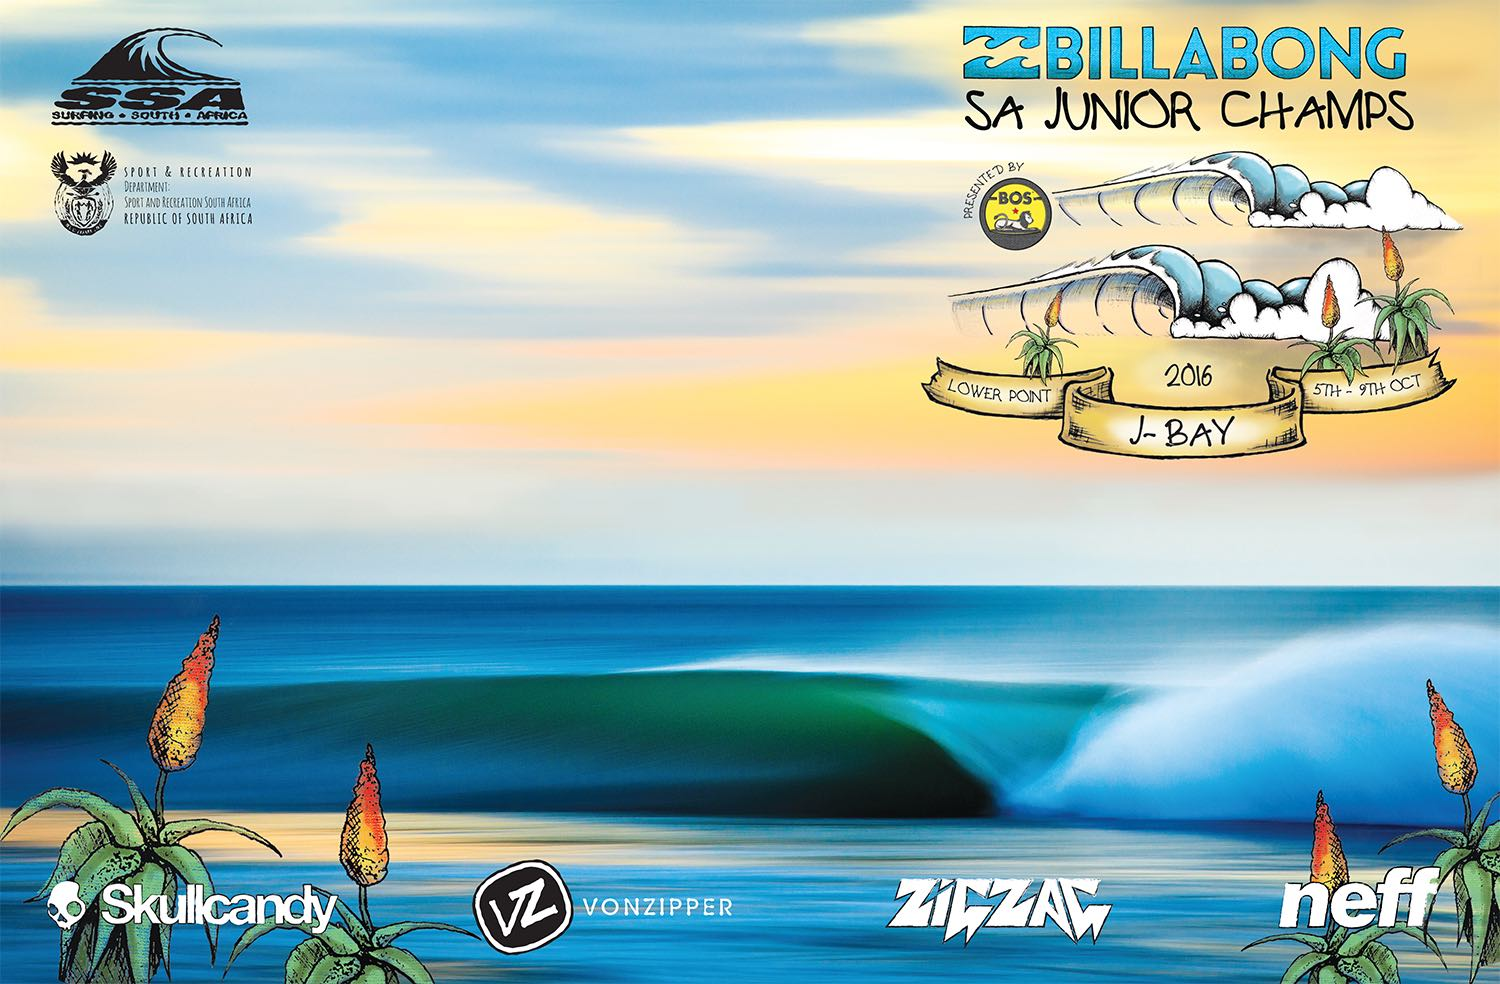 The Billabong SA Junior Surfing Champs event